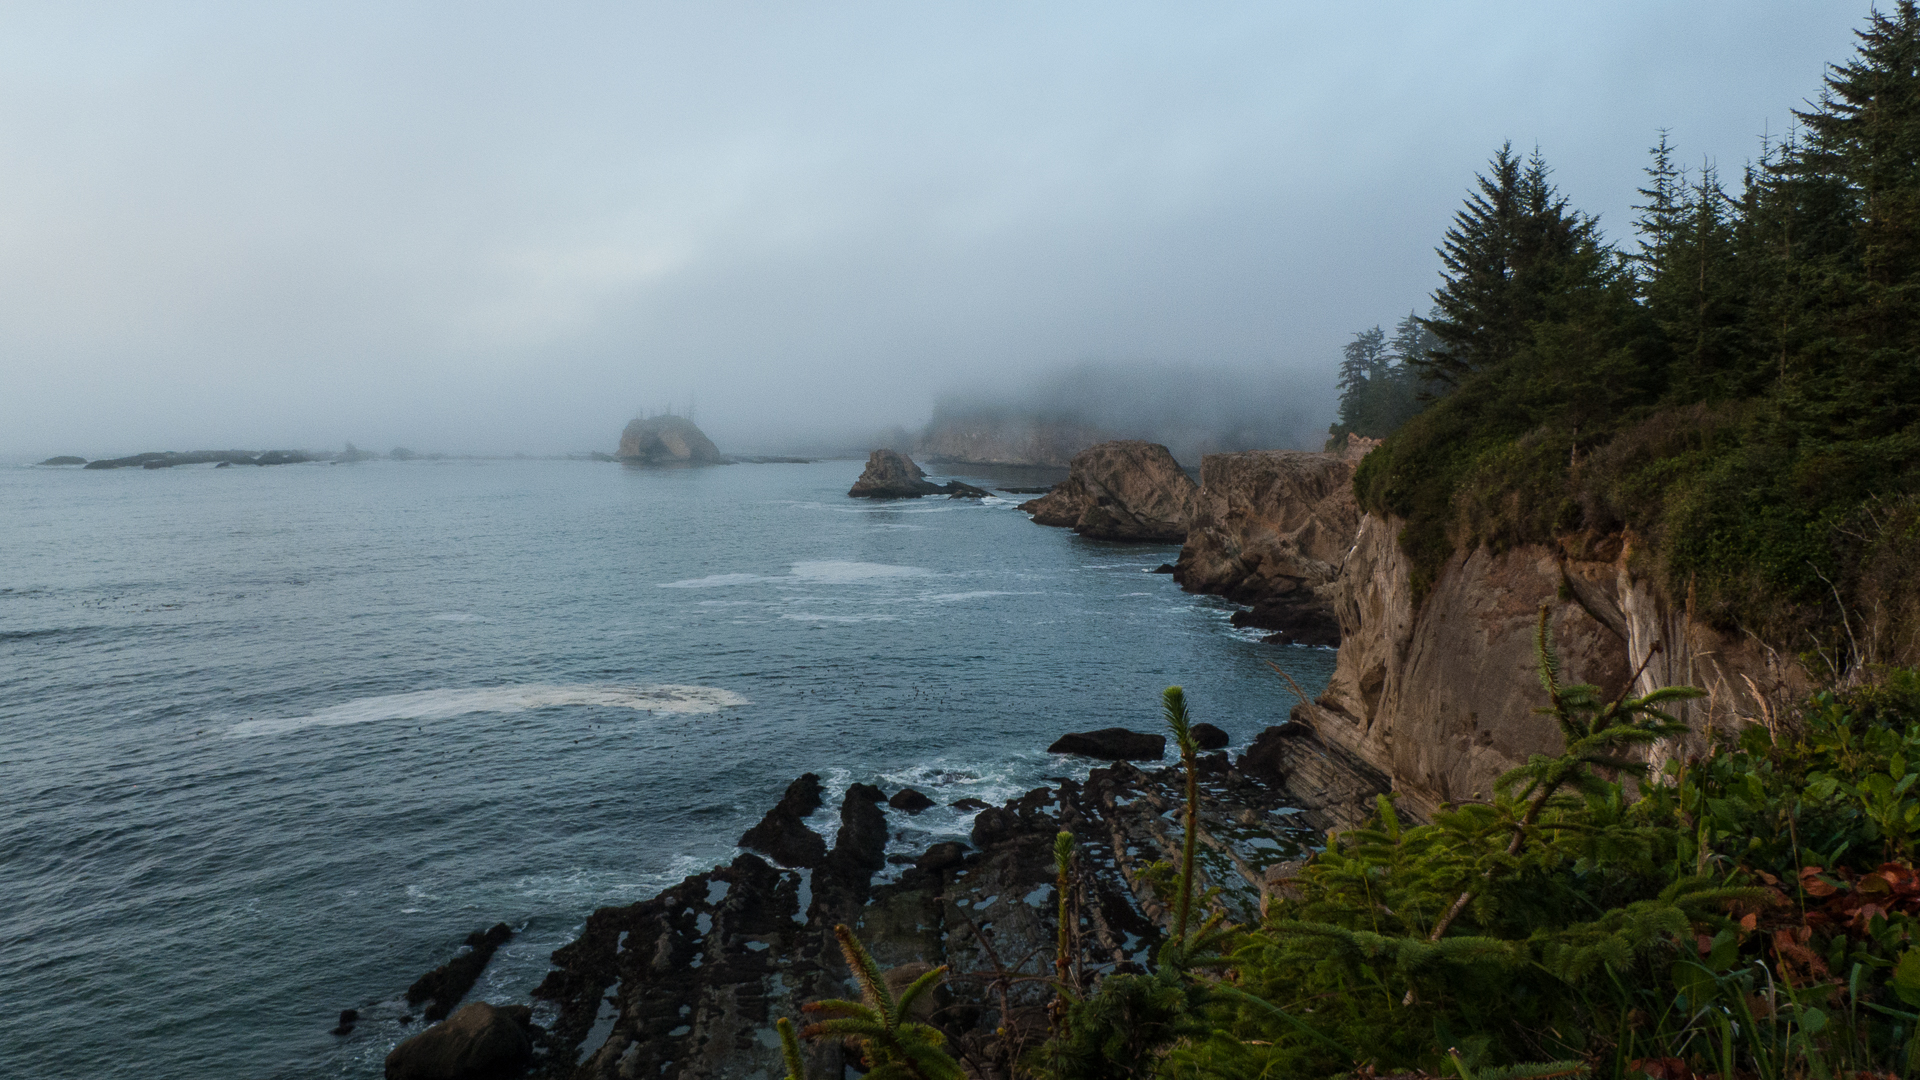 The cool morning brought with it fog, giving us a pretty typical view of the Oregon Coast.